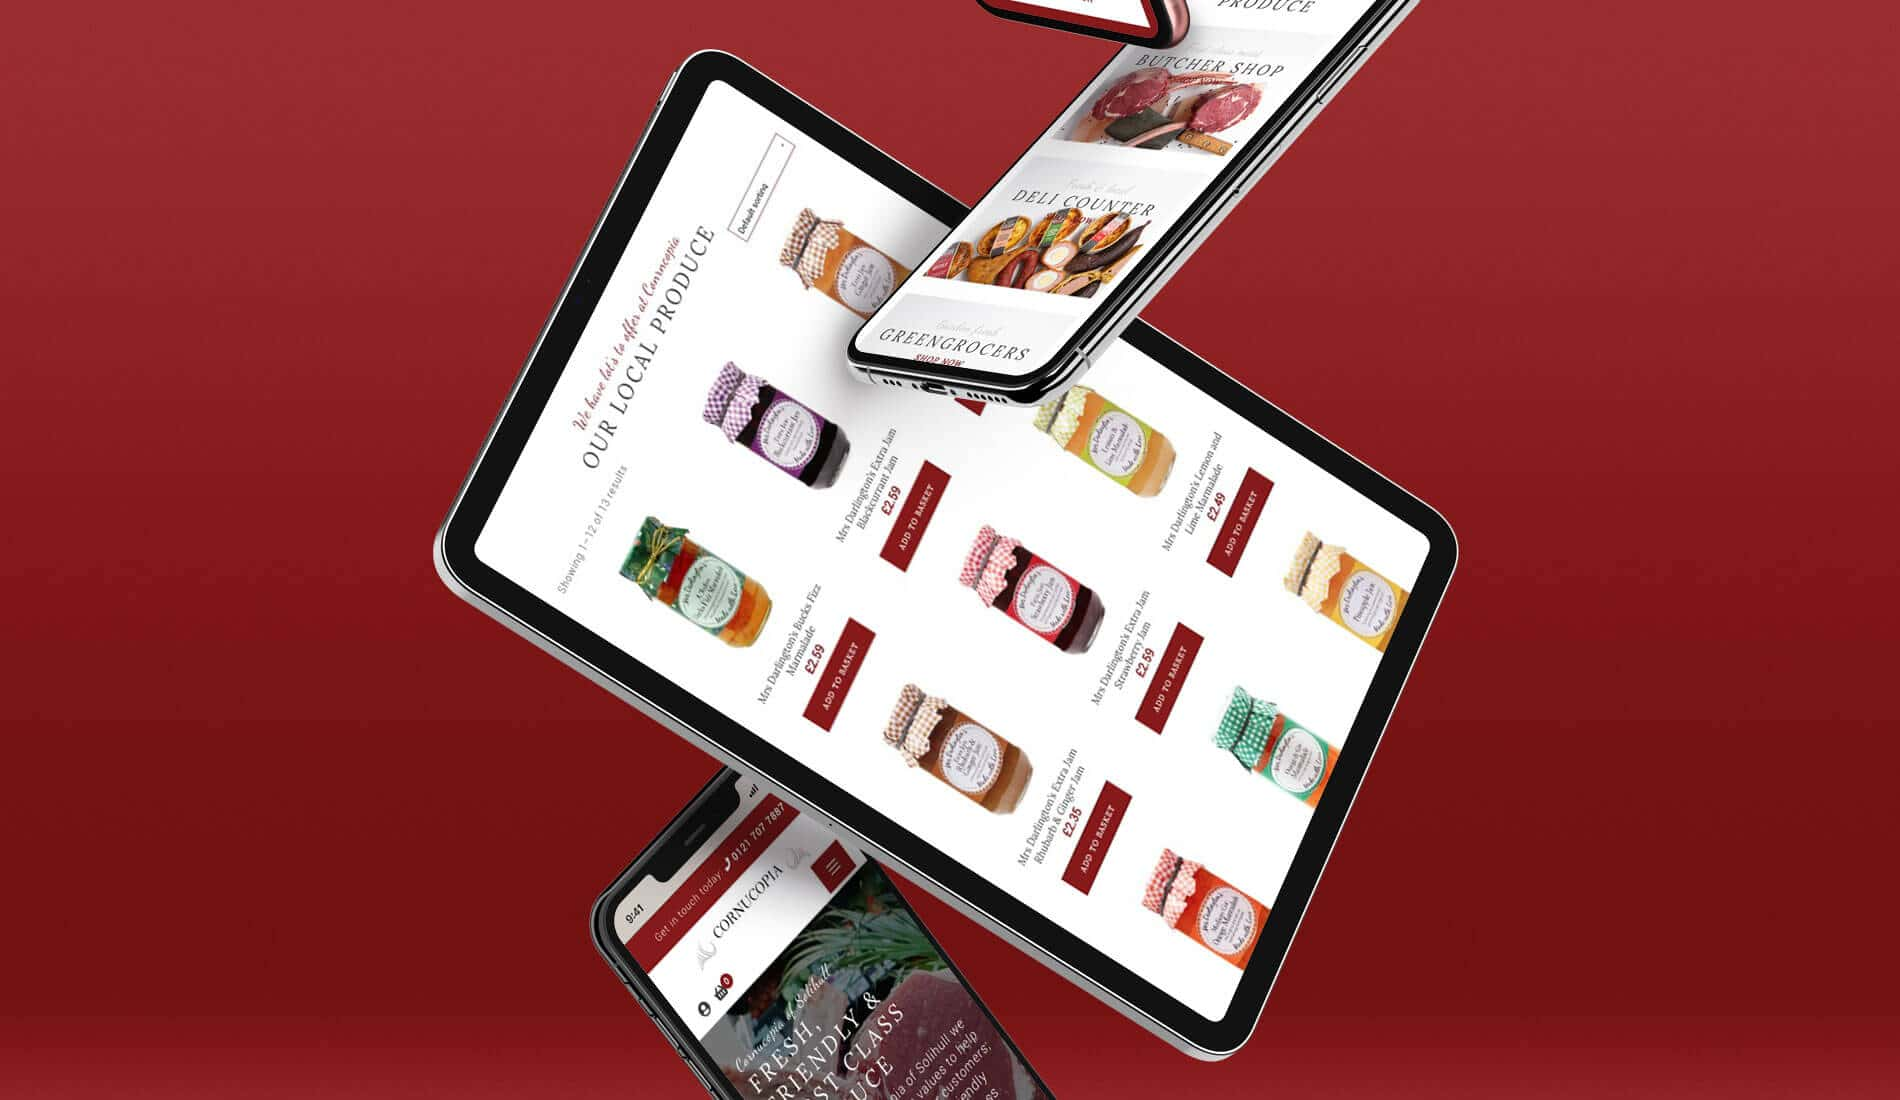 Cornucopia website on various devices